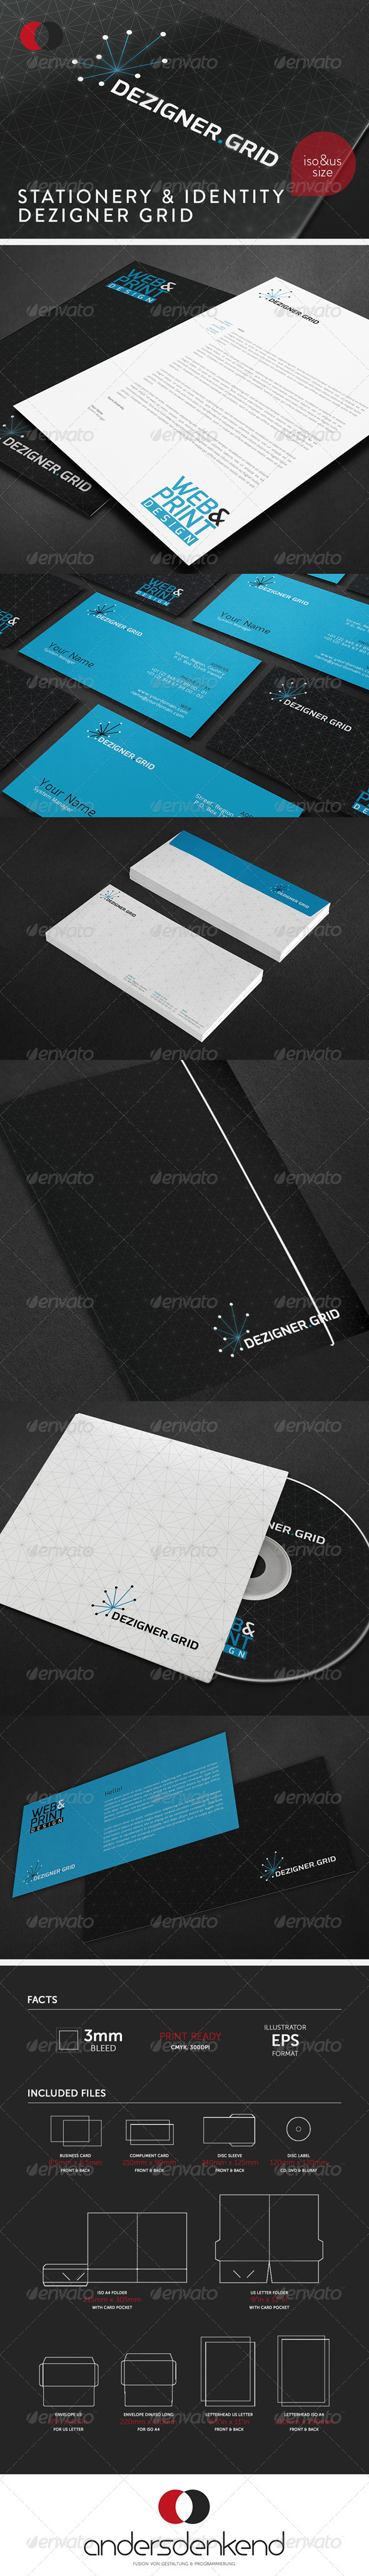 Agency Stationary Template - Vol.3 - Stationery Print Templates